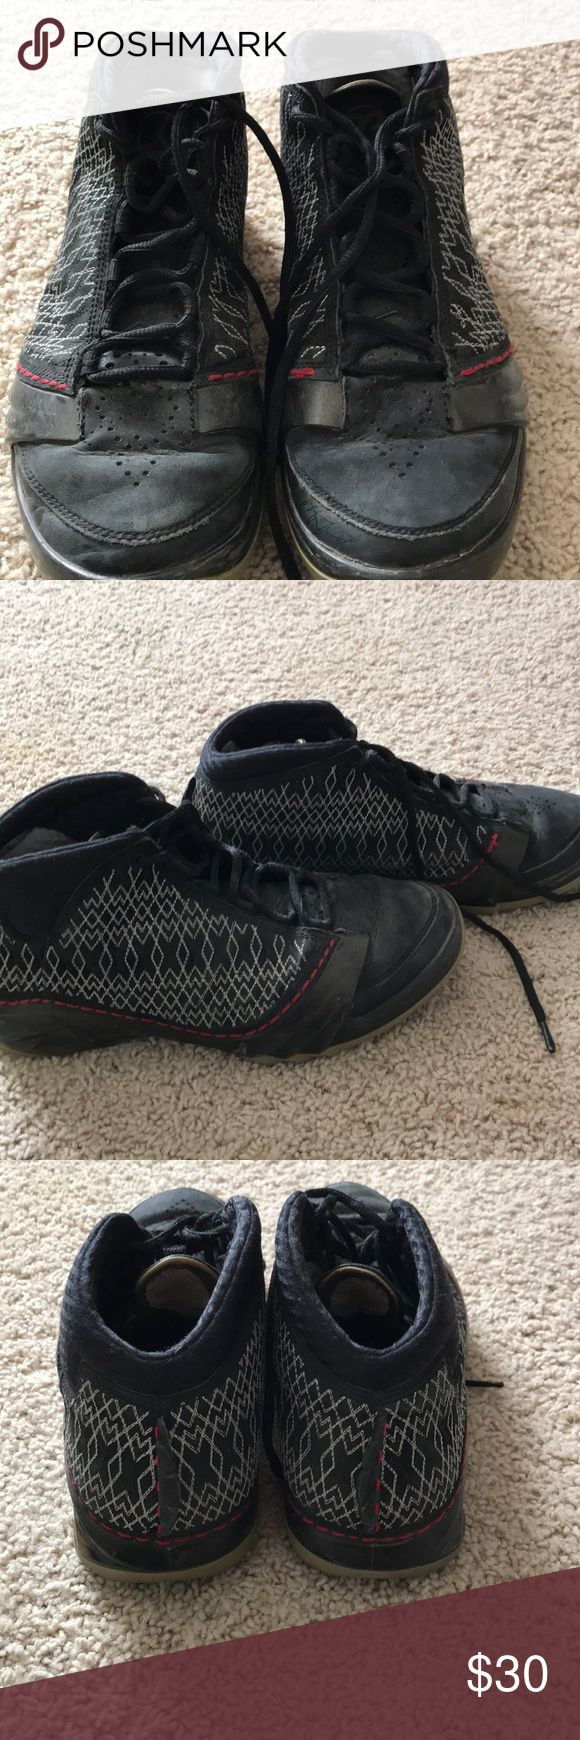 Jordan 23 Shoes in ok condition  Has wear and tear on front of shoe Was just sitting in my closet for years Air Jordan Shoes Athletic Shoes